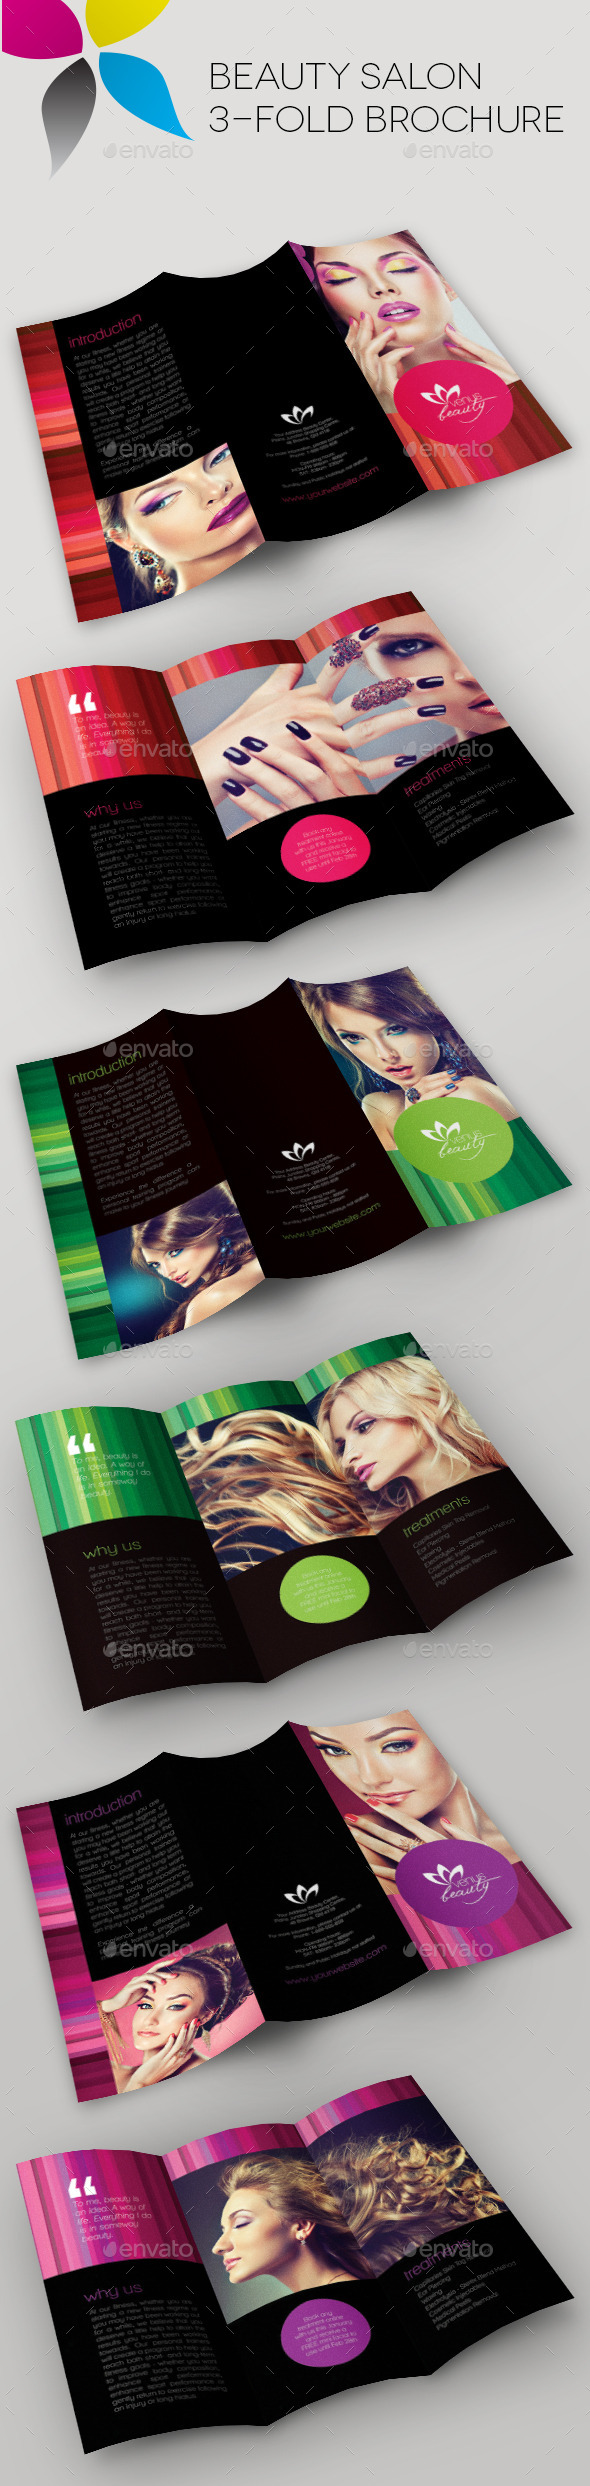 Beauty Salon Brochure  Brochure Template Brochures And Visiting